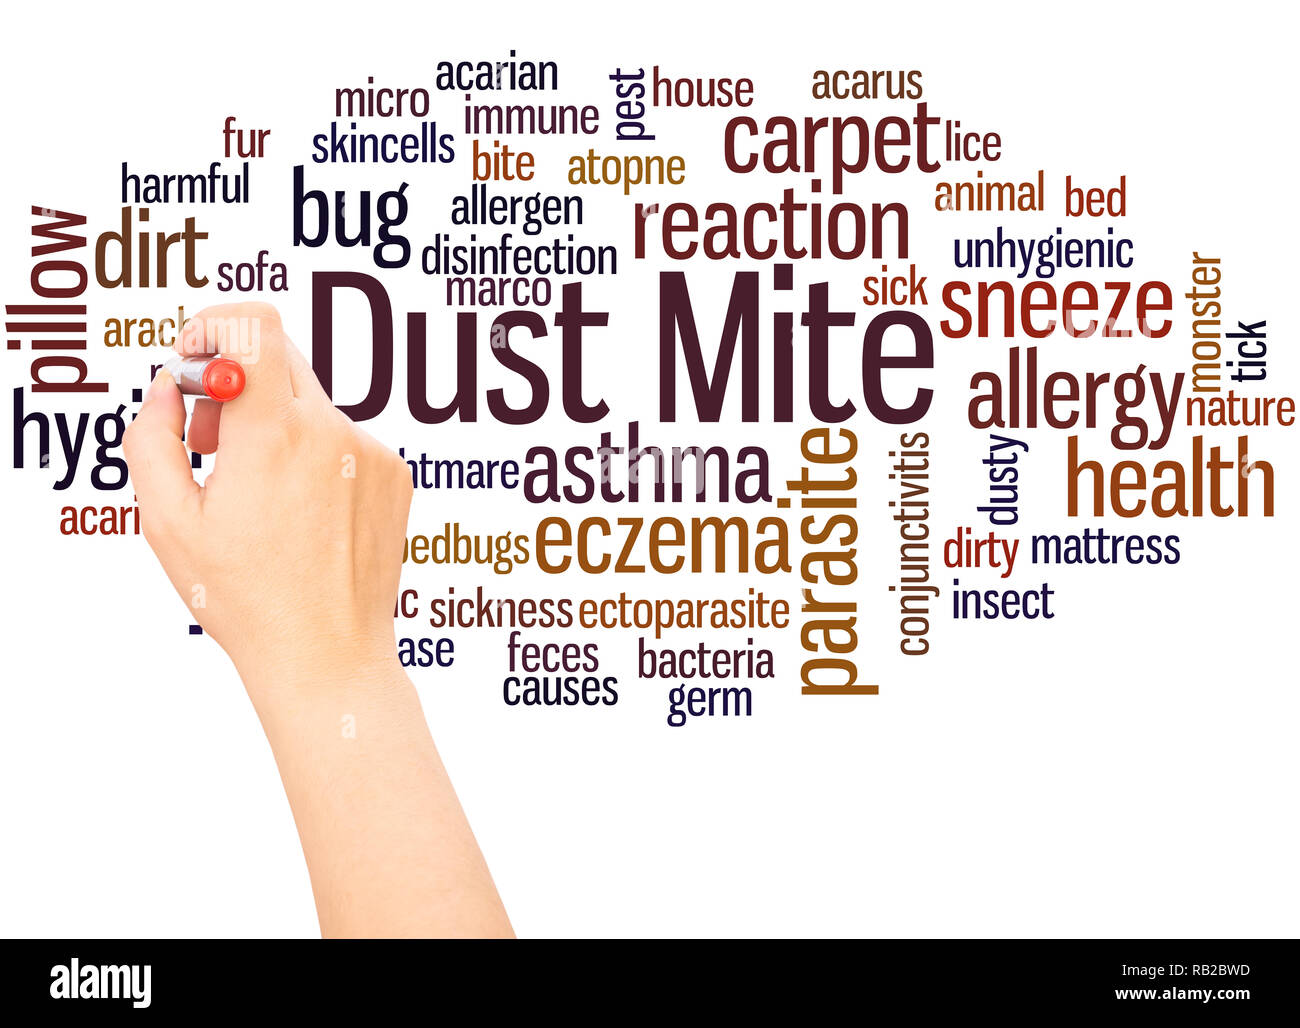 Dust mite word cloud hand writing concept on white background. - Stock Image